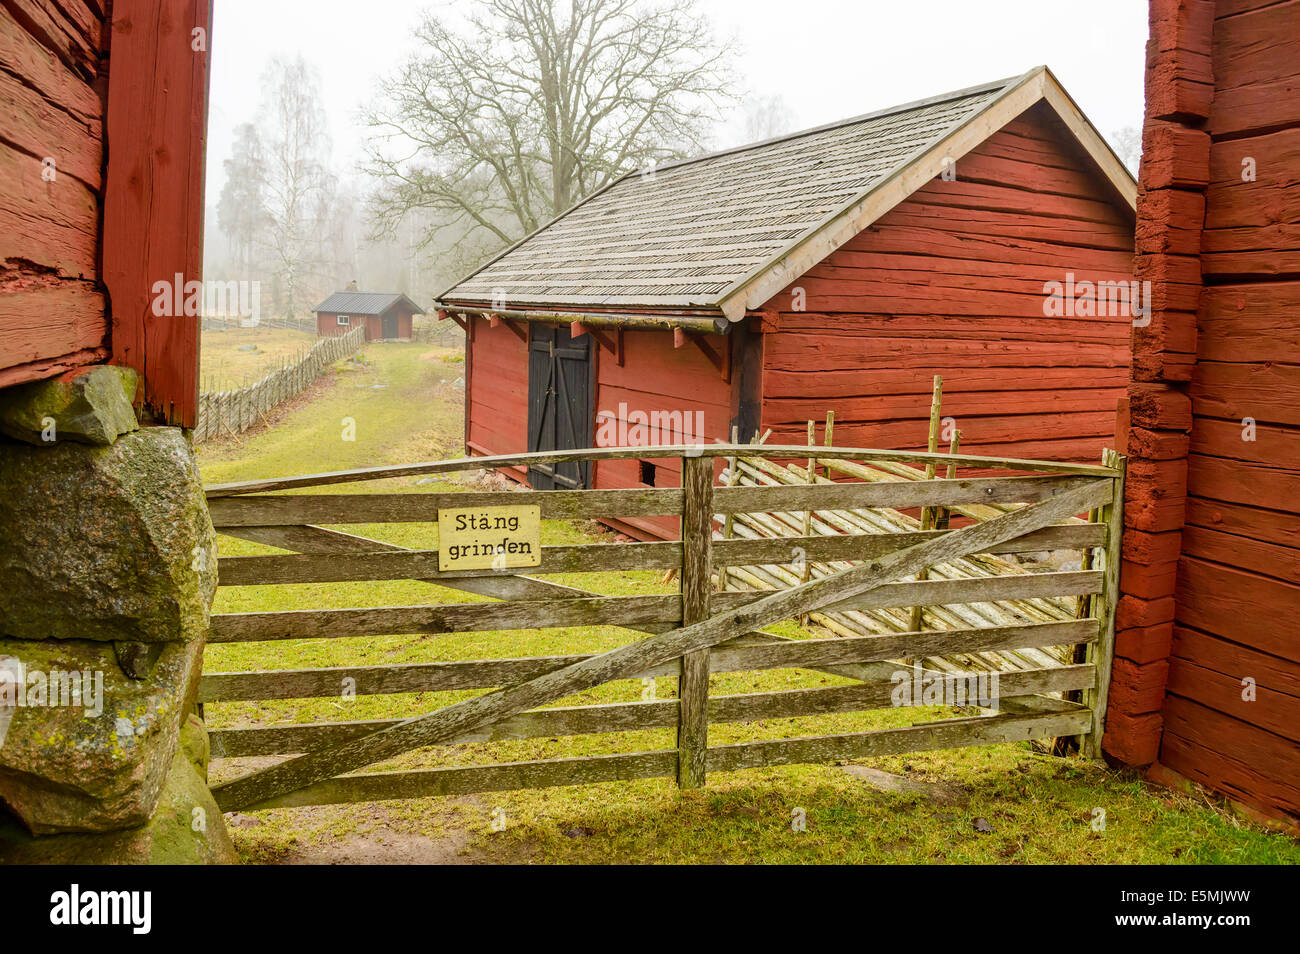 Farm environment in Sweden from around the years 1700 to 1800. Barn and tool house and a closed gate. - Stock Image